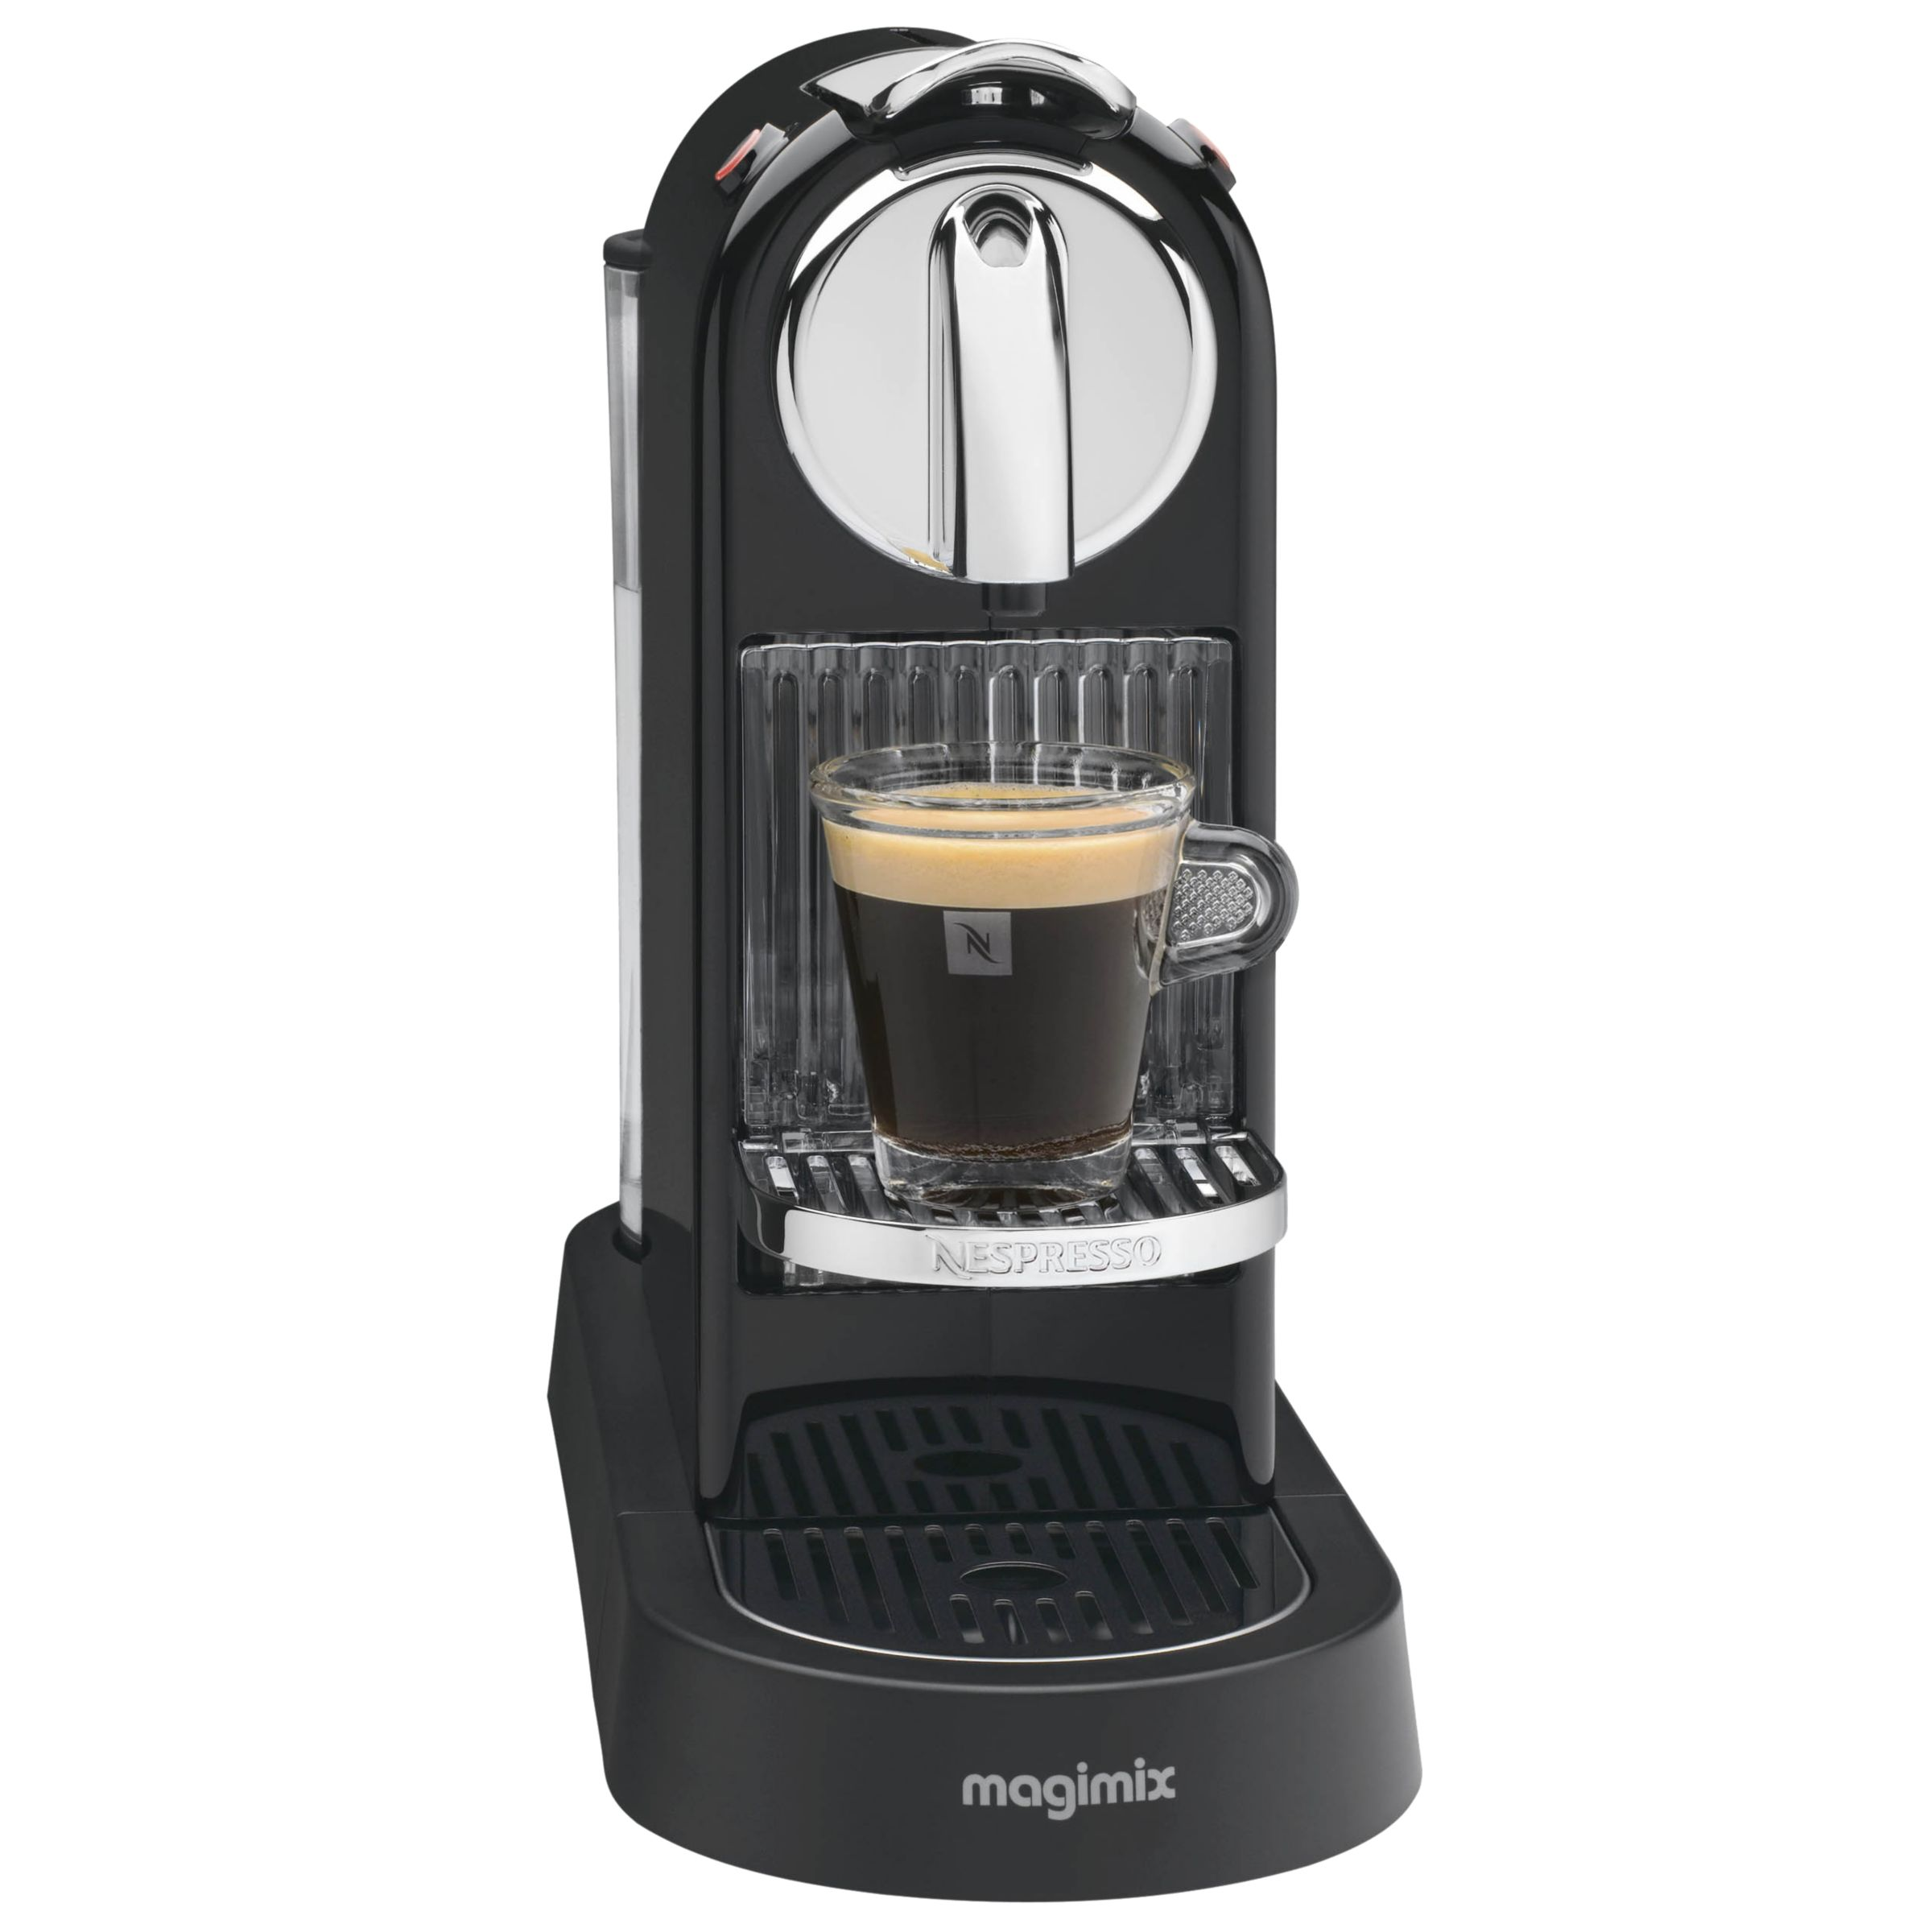 Magimix Nespresso CitiZ M190 Coffee Maker  Compare Prices  -> Nespresso John Lewis